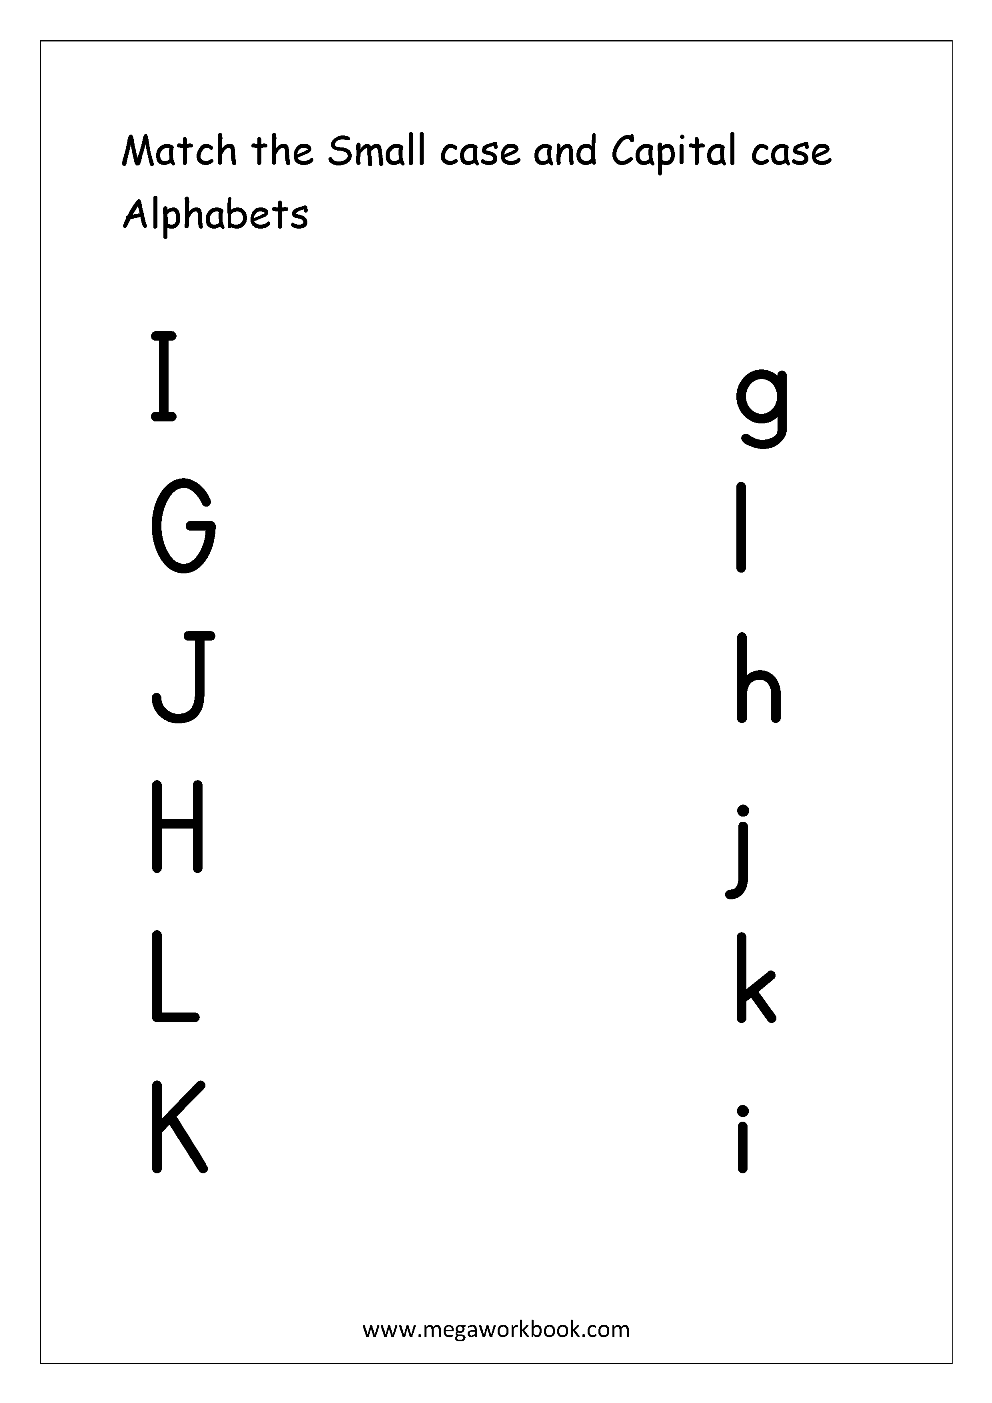 Kindergarten Worksheets: Match upper case and lower case letters 1